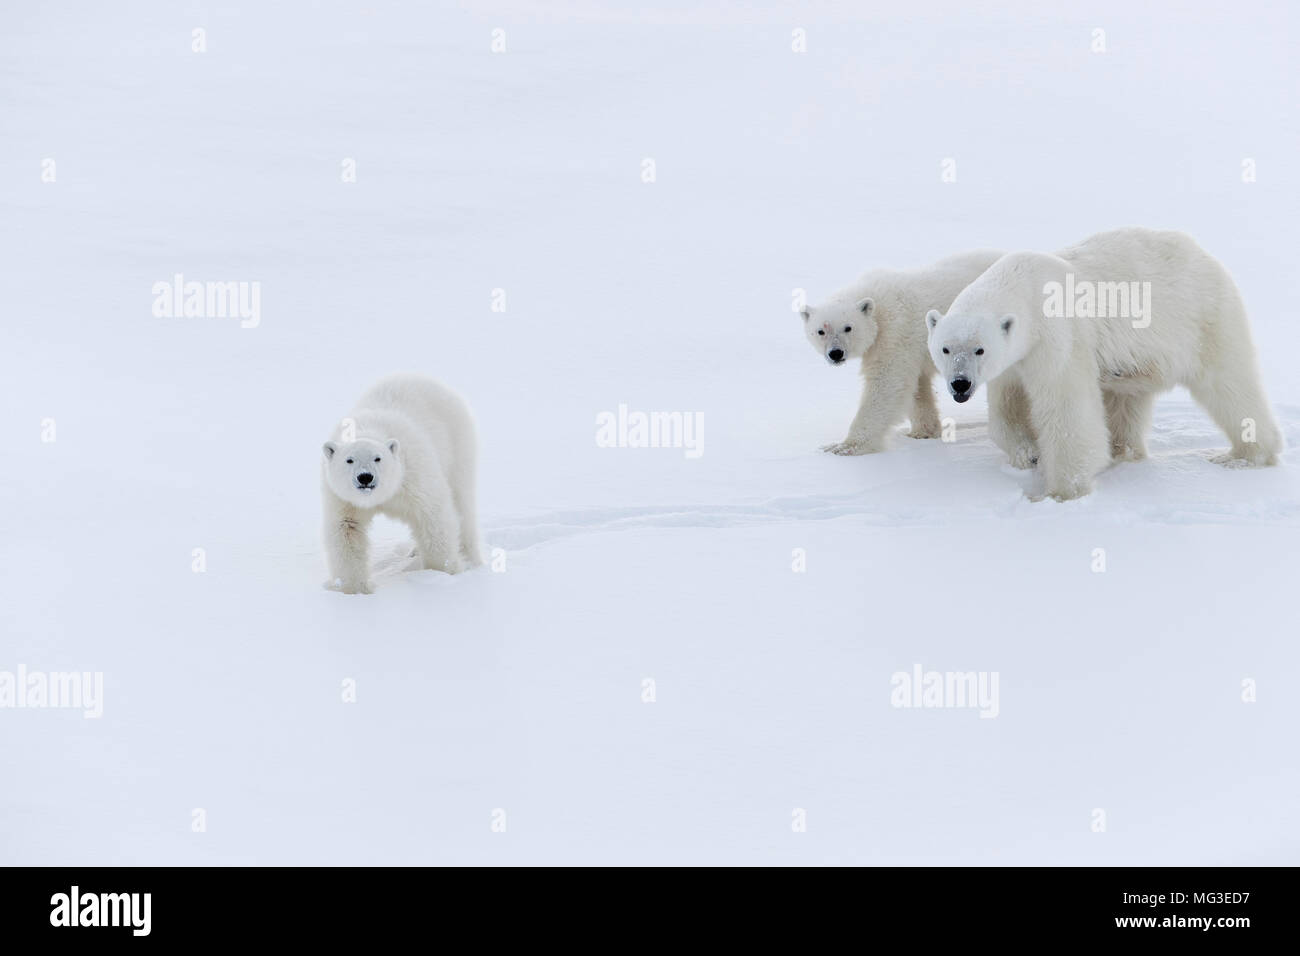 Mother polar bear and 2 yearling cubs walking on an iceberg, Baffin Island, Canada, nunavut, arctic - Stock Image